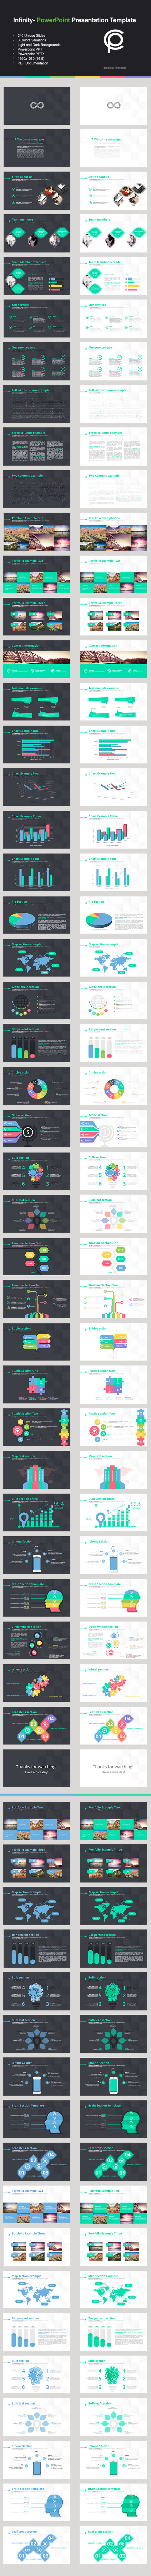 GraphicRiver Infinity Multipurpose PowerPoint Presentation 10590305